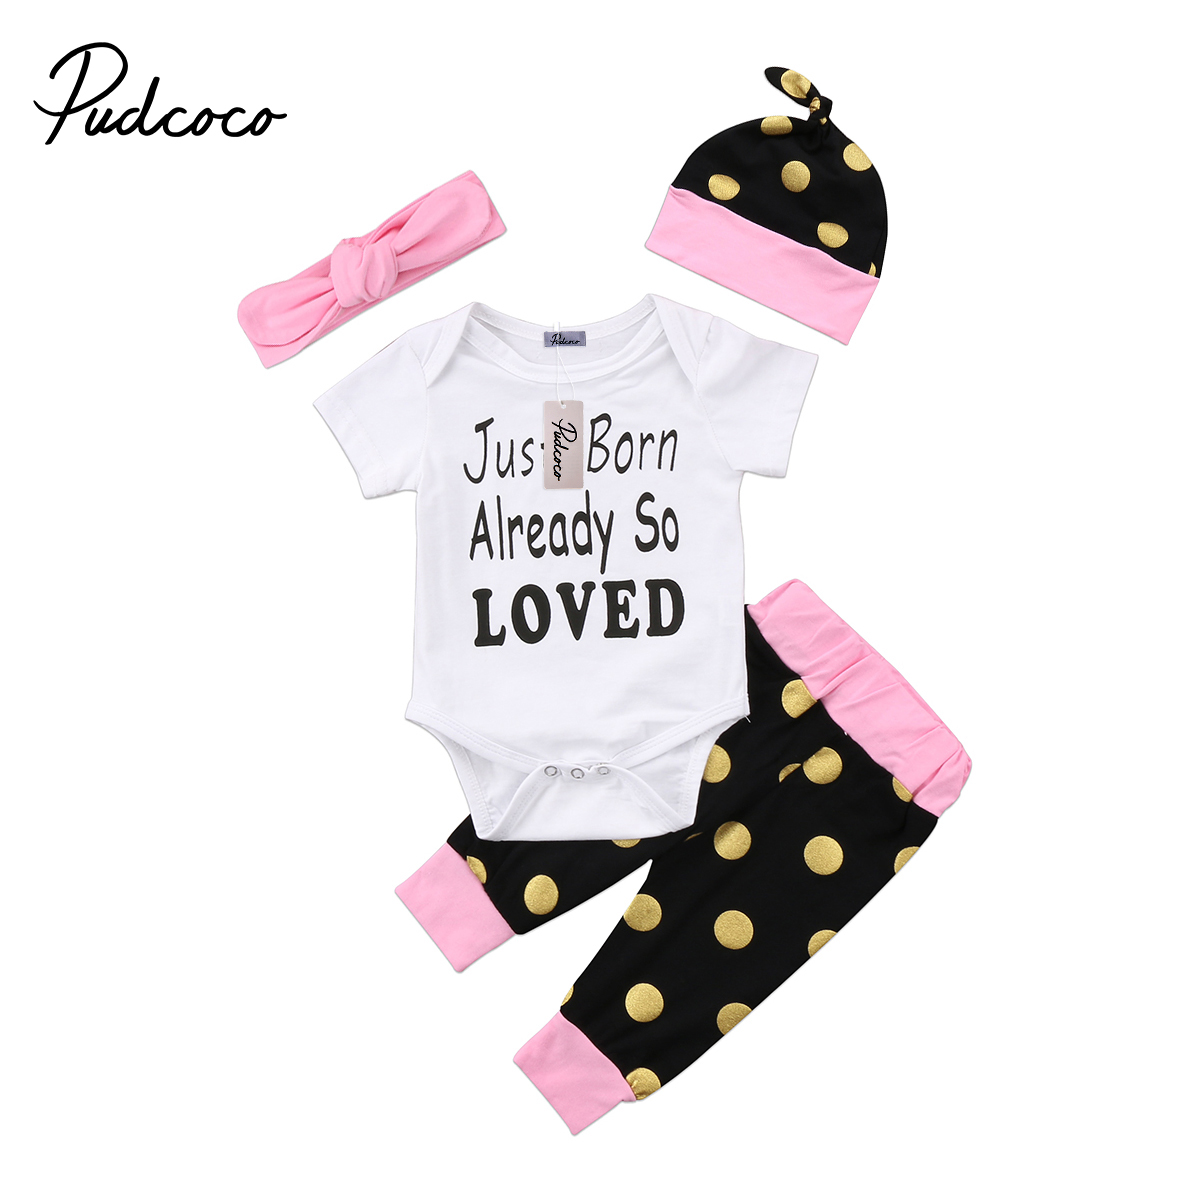 Pudcoco 2PCS Cute Newborn Baby Boy Girl Cotton Short Sleeve O-Neck Bodysuit Pant Hat Headband Outfit Set 0-18Months Helen115